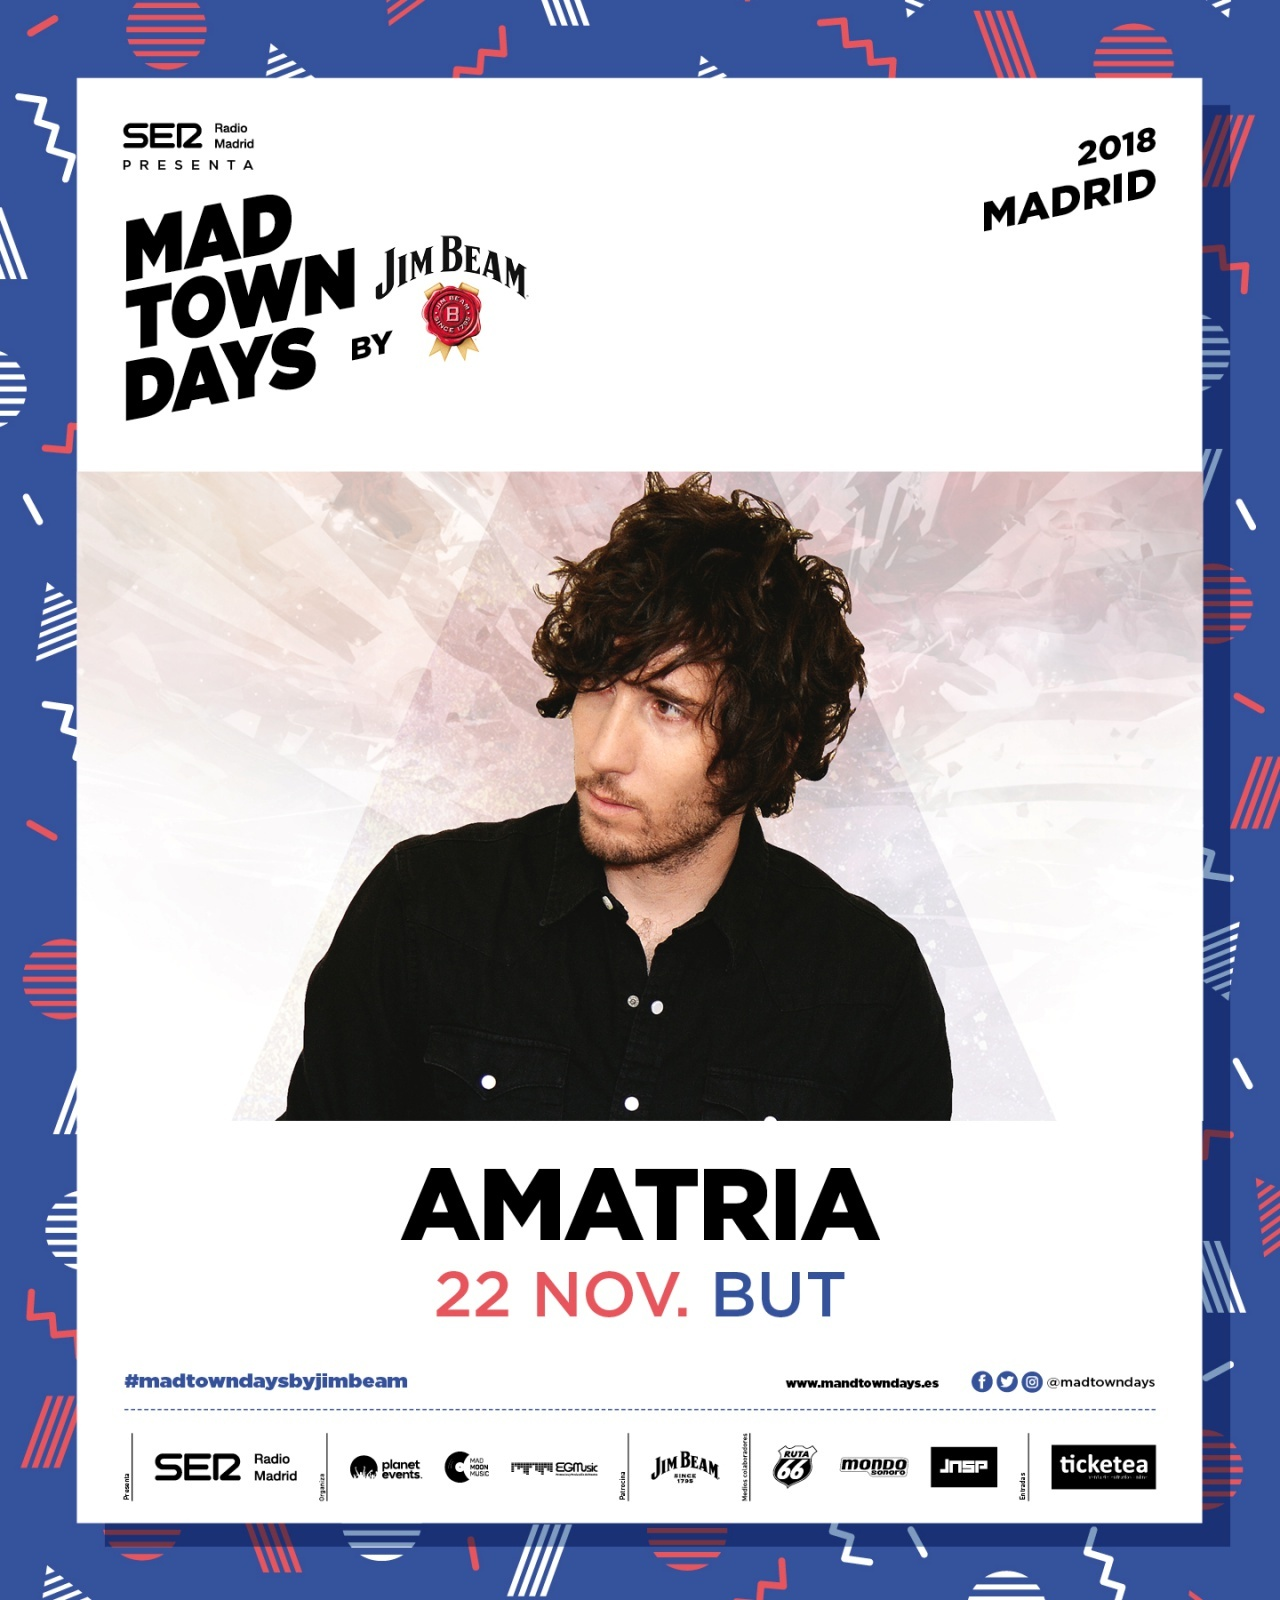 7 Amatria 22 Nov